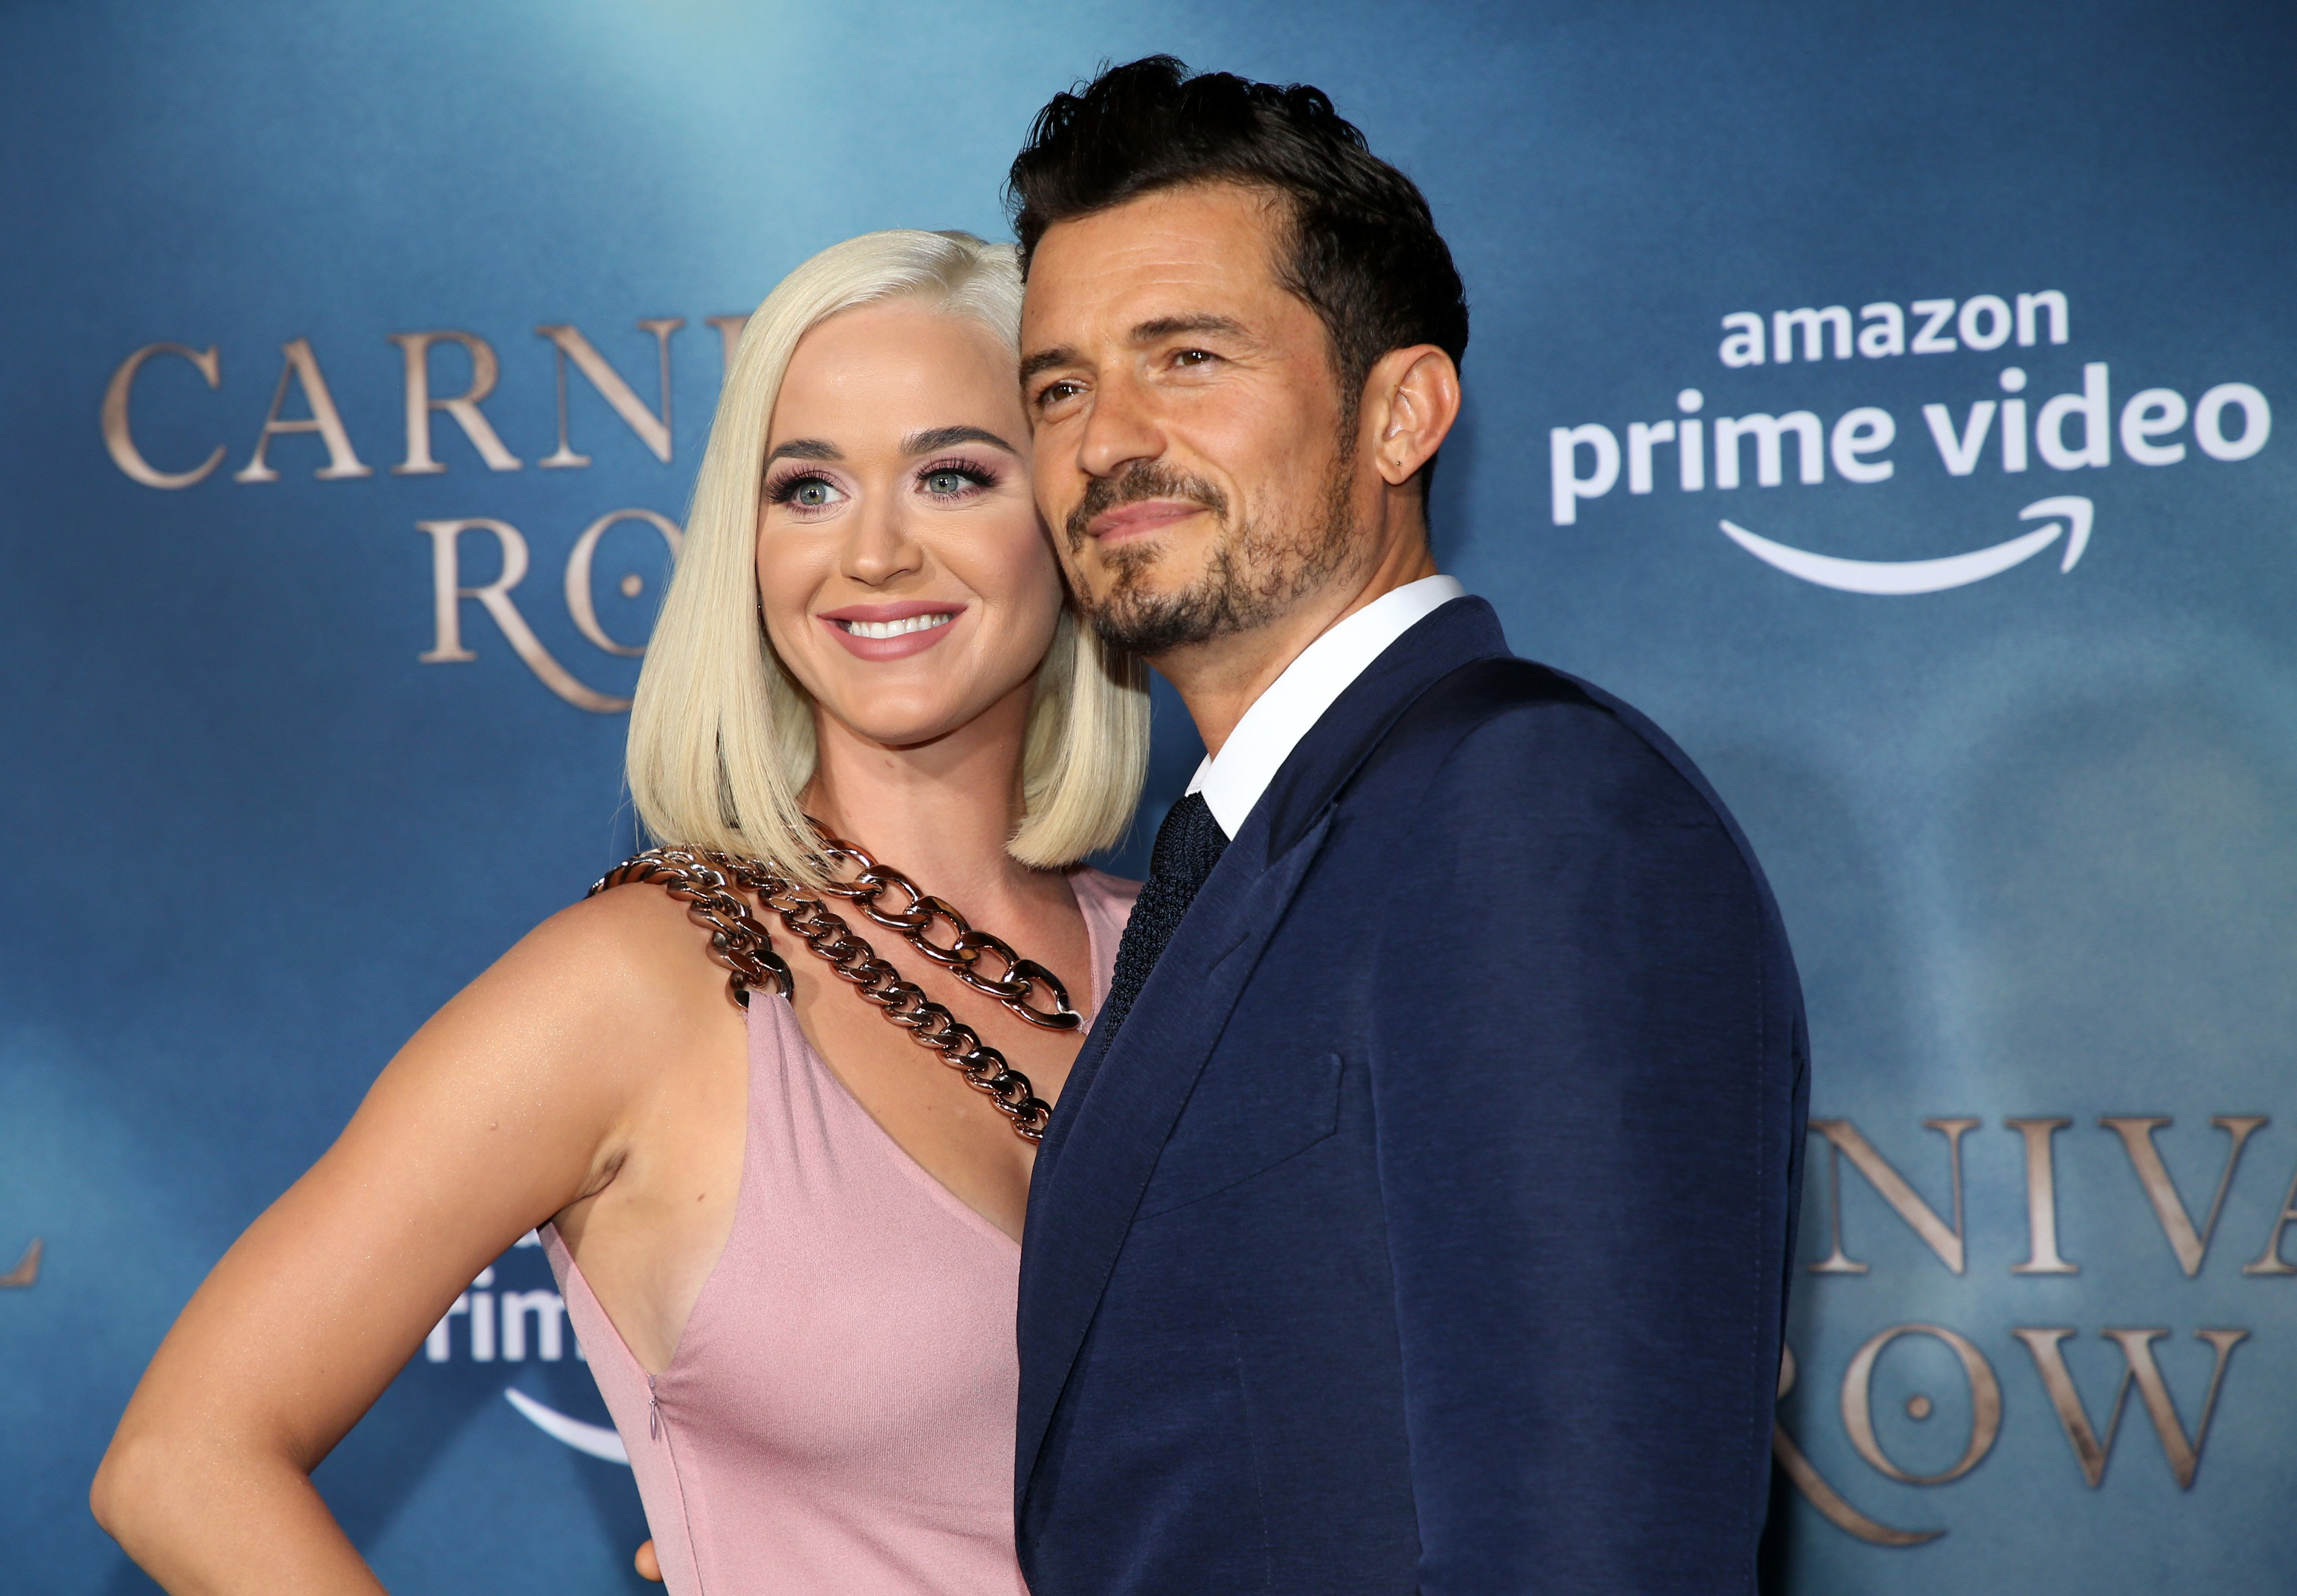 """Katy Perry and Orlando Bloom attend the premiere of """"Carnival Row""""  on August 21, 2019, in Hollywood, California. 